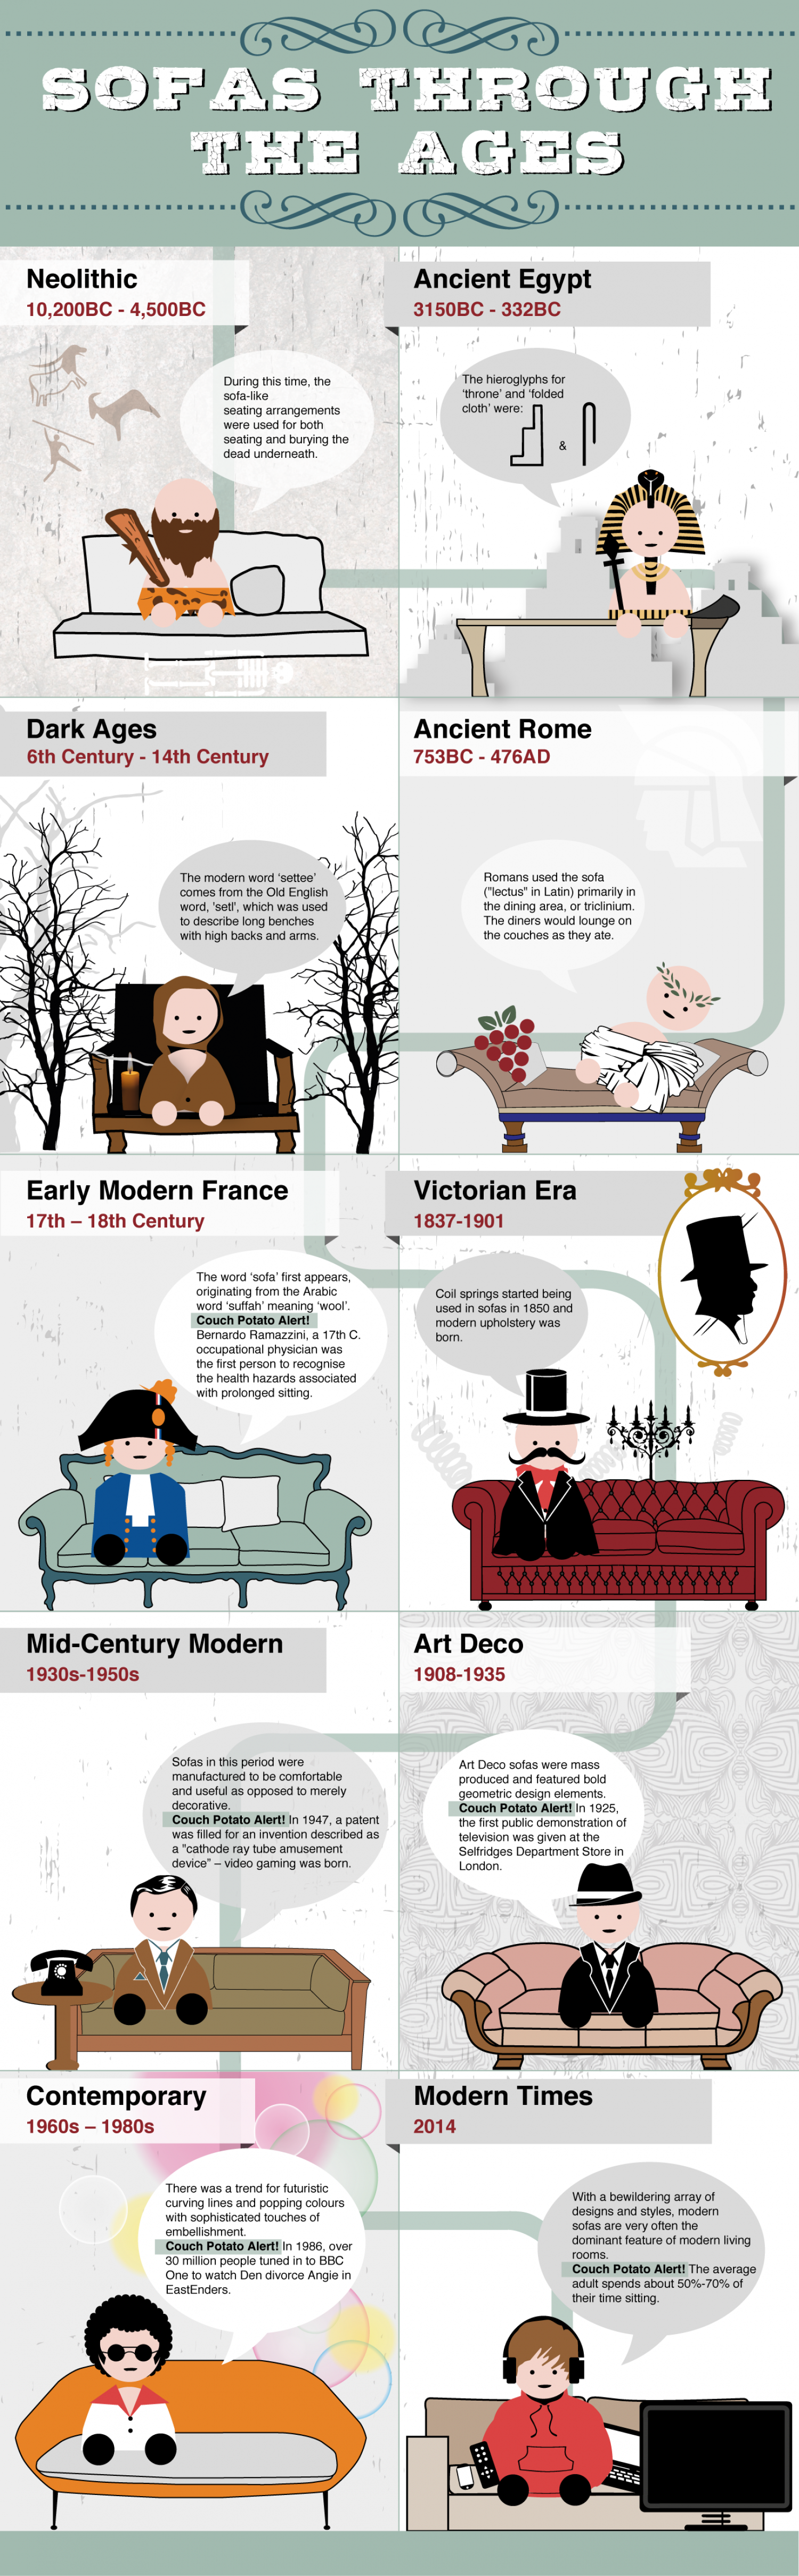 Sofas Through The Ages Infographic